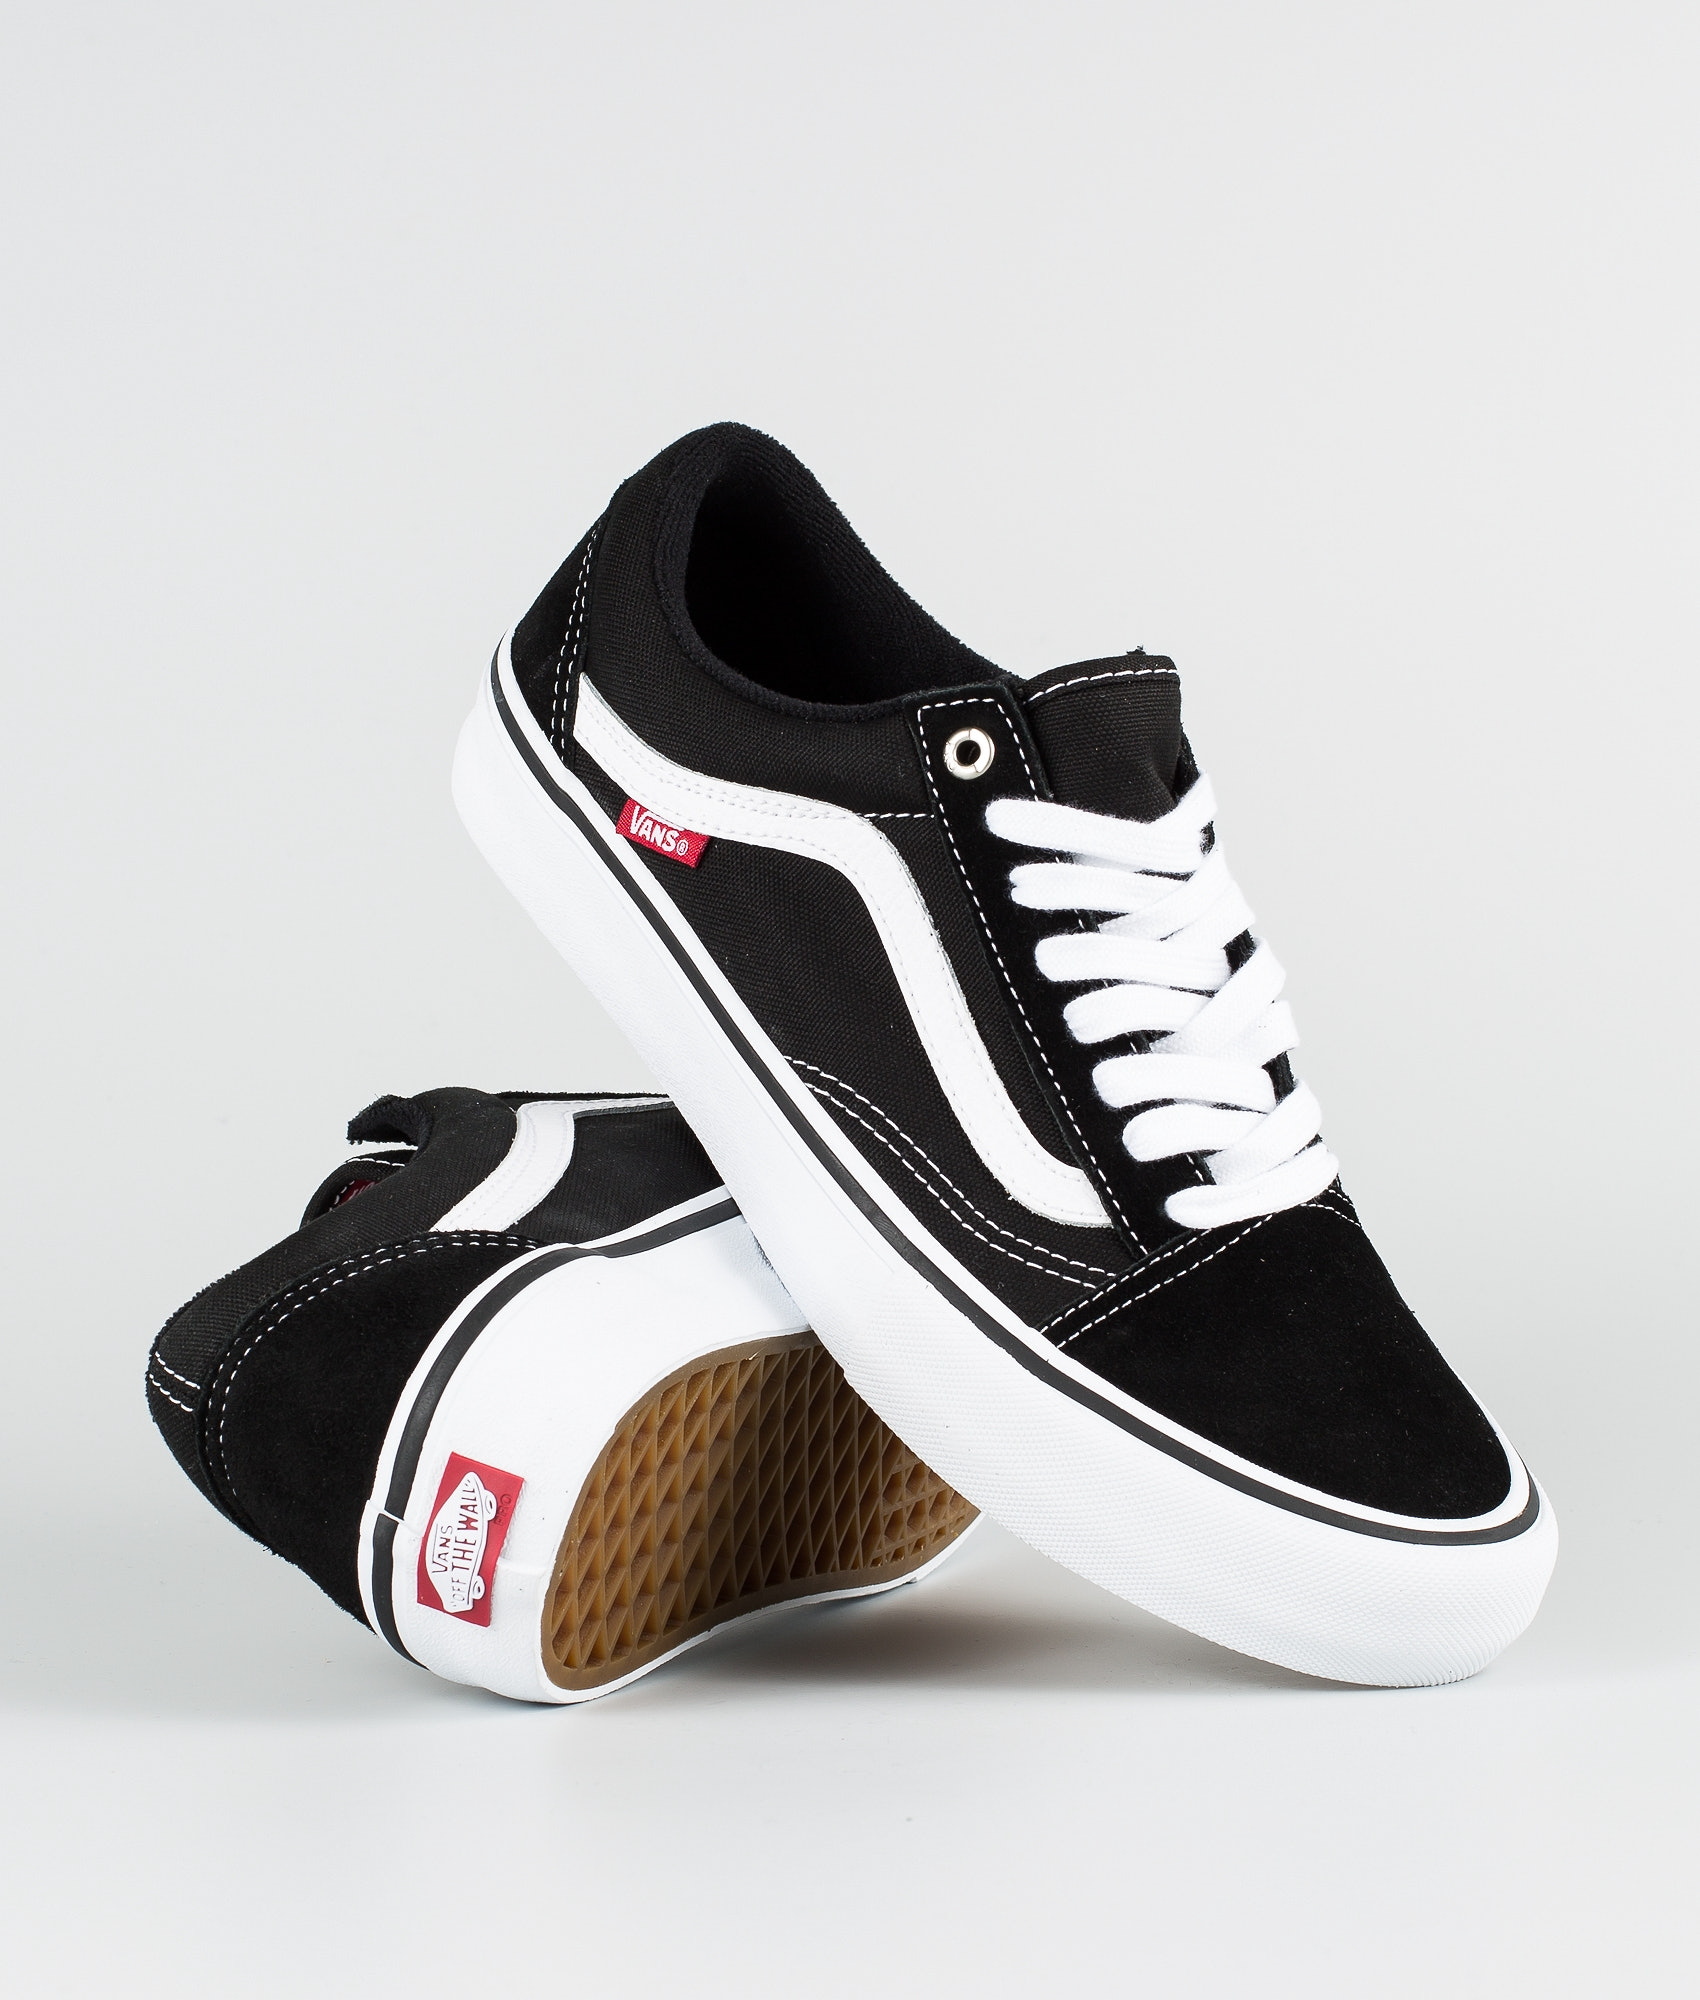 e5e6d7f1b4 Vans Old Skool Pro Shoes Black White - Ridestore.com